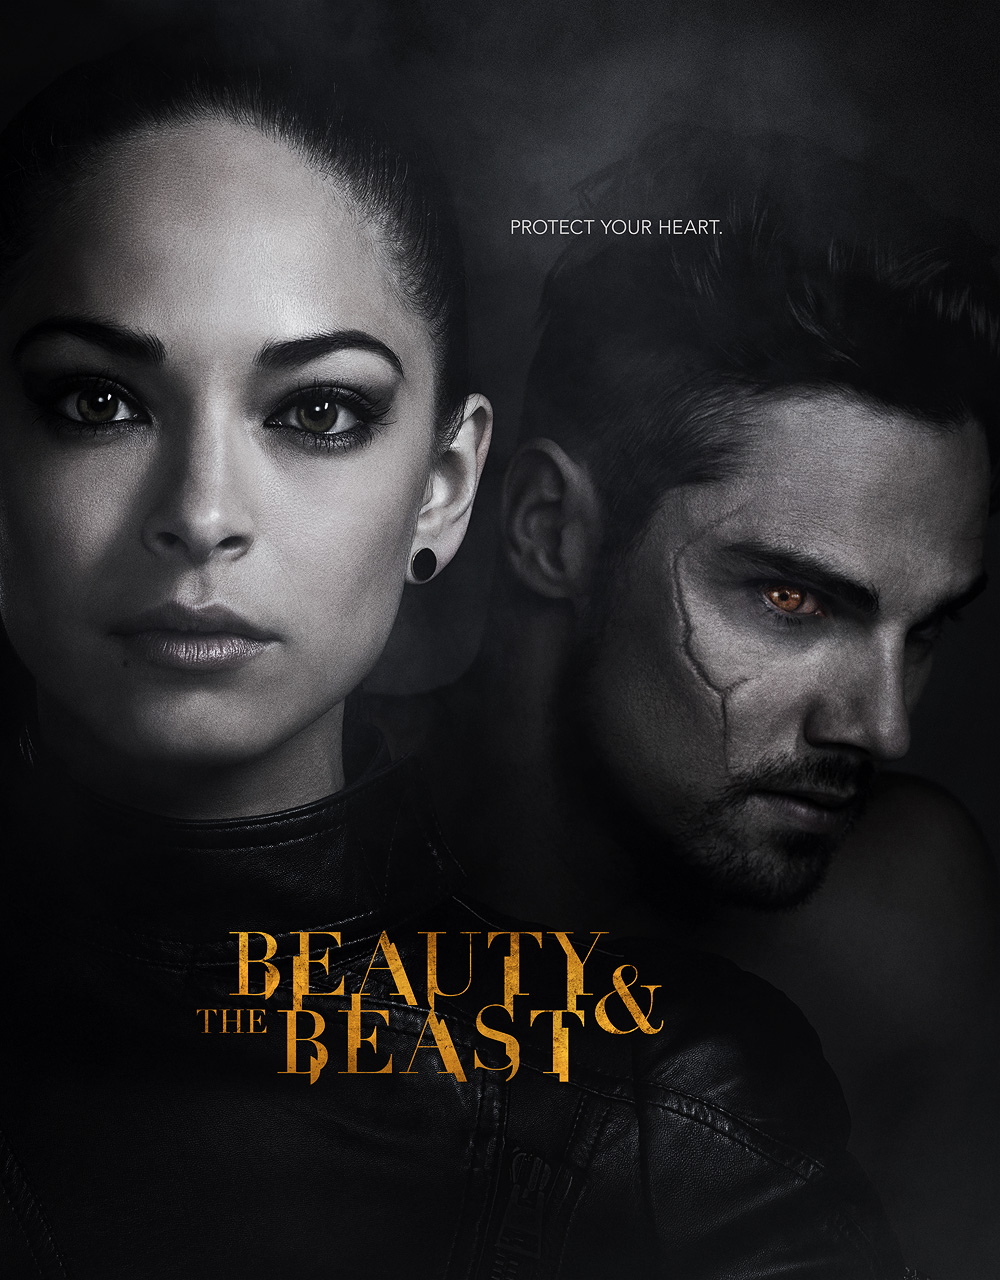 batb-poster-protect-your-heart-beauty-and-the-beast-cw-.jpg